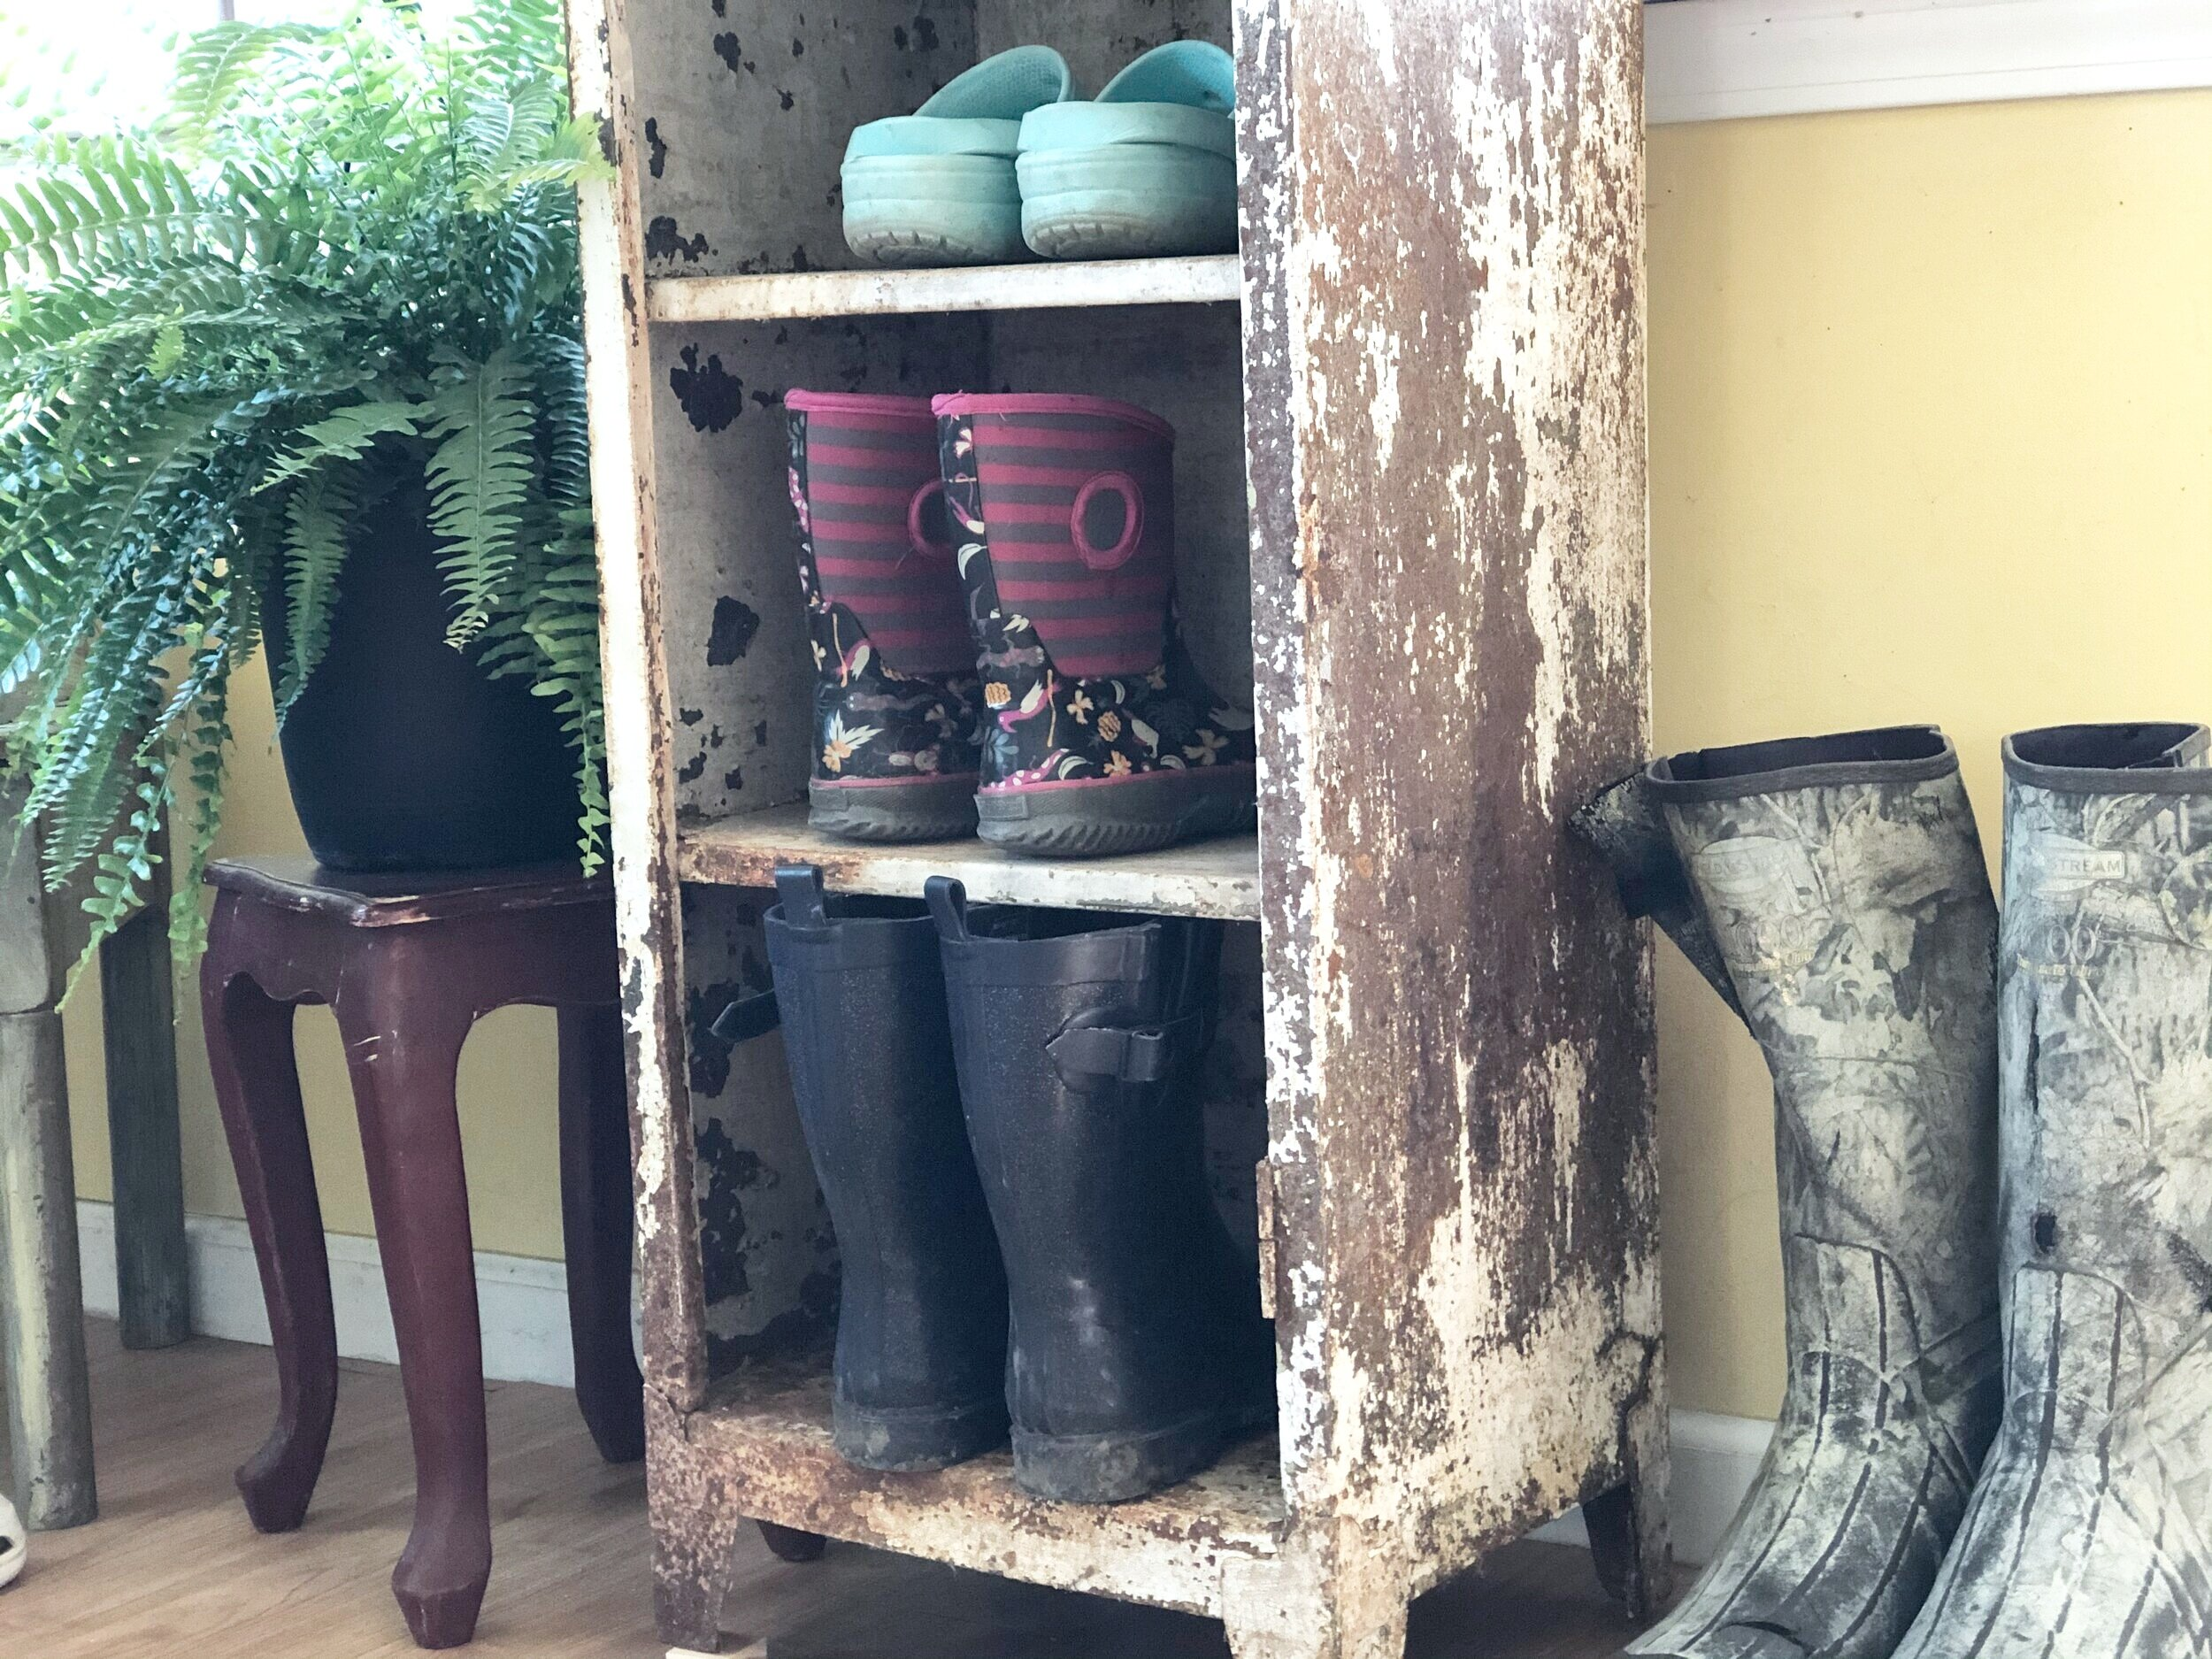 metal cabinet with chipped paint and rust turned into a shoe holder for a mud room. Shoe organizer is holding dark blue sparkly rain boots, child's stripped and floral rainboots, light blue crocs. Beside the metal cabinet are camouflaged hunting water boots and a red table with a green fern.